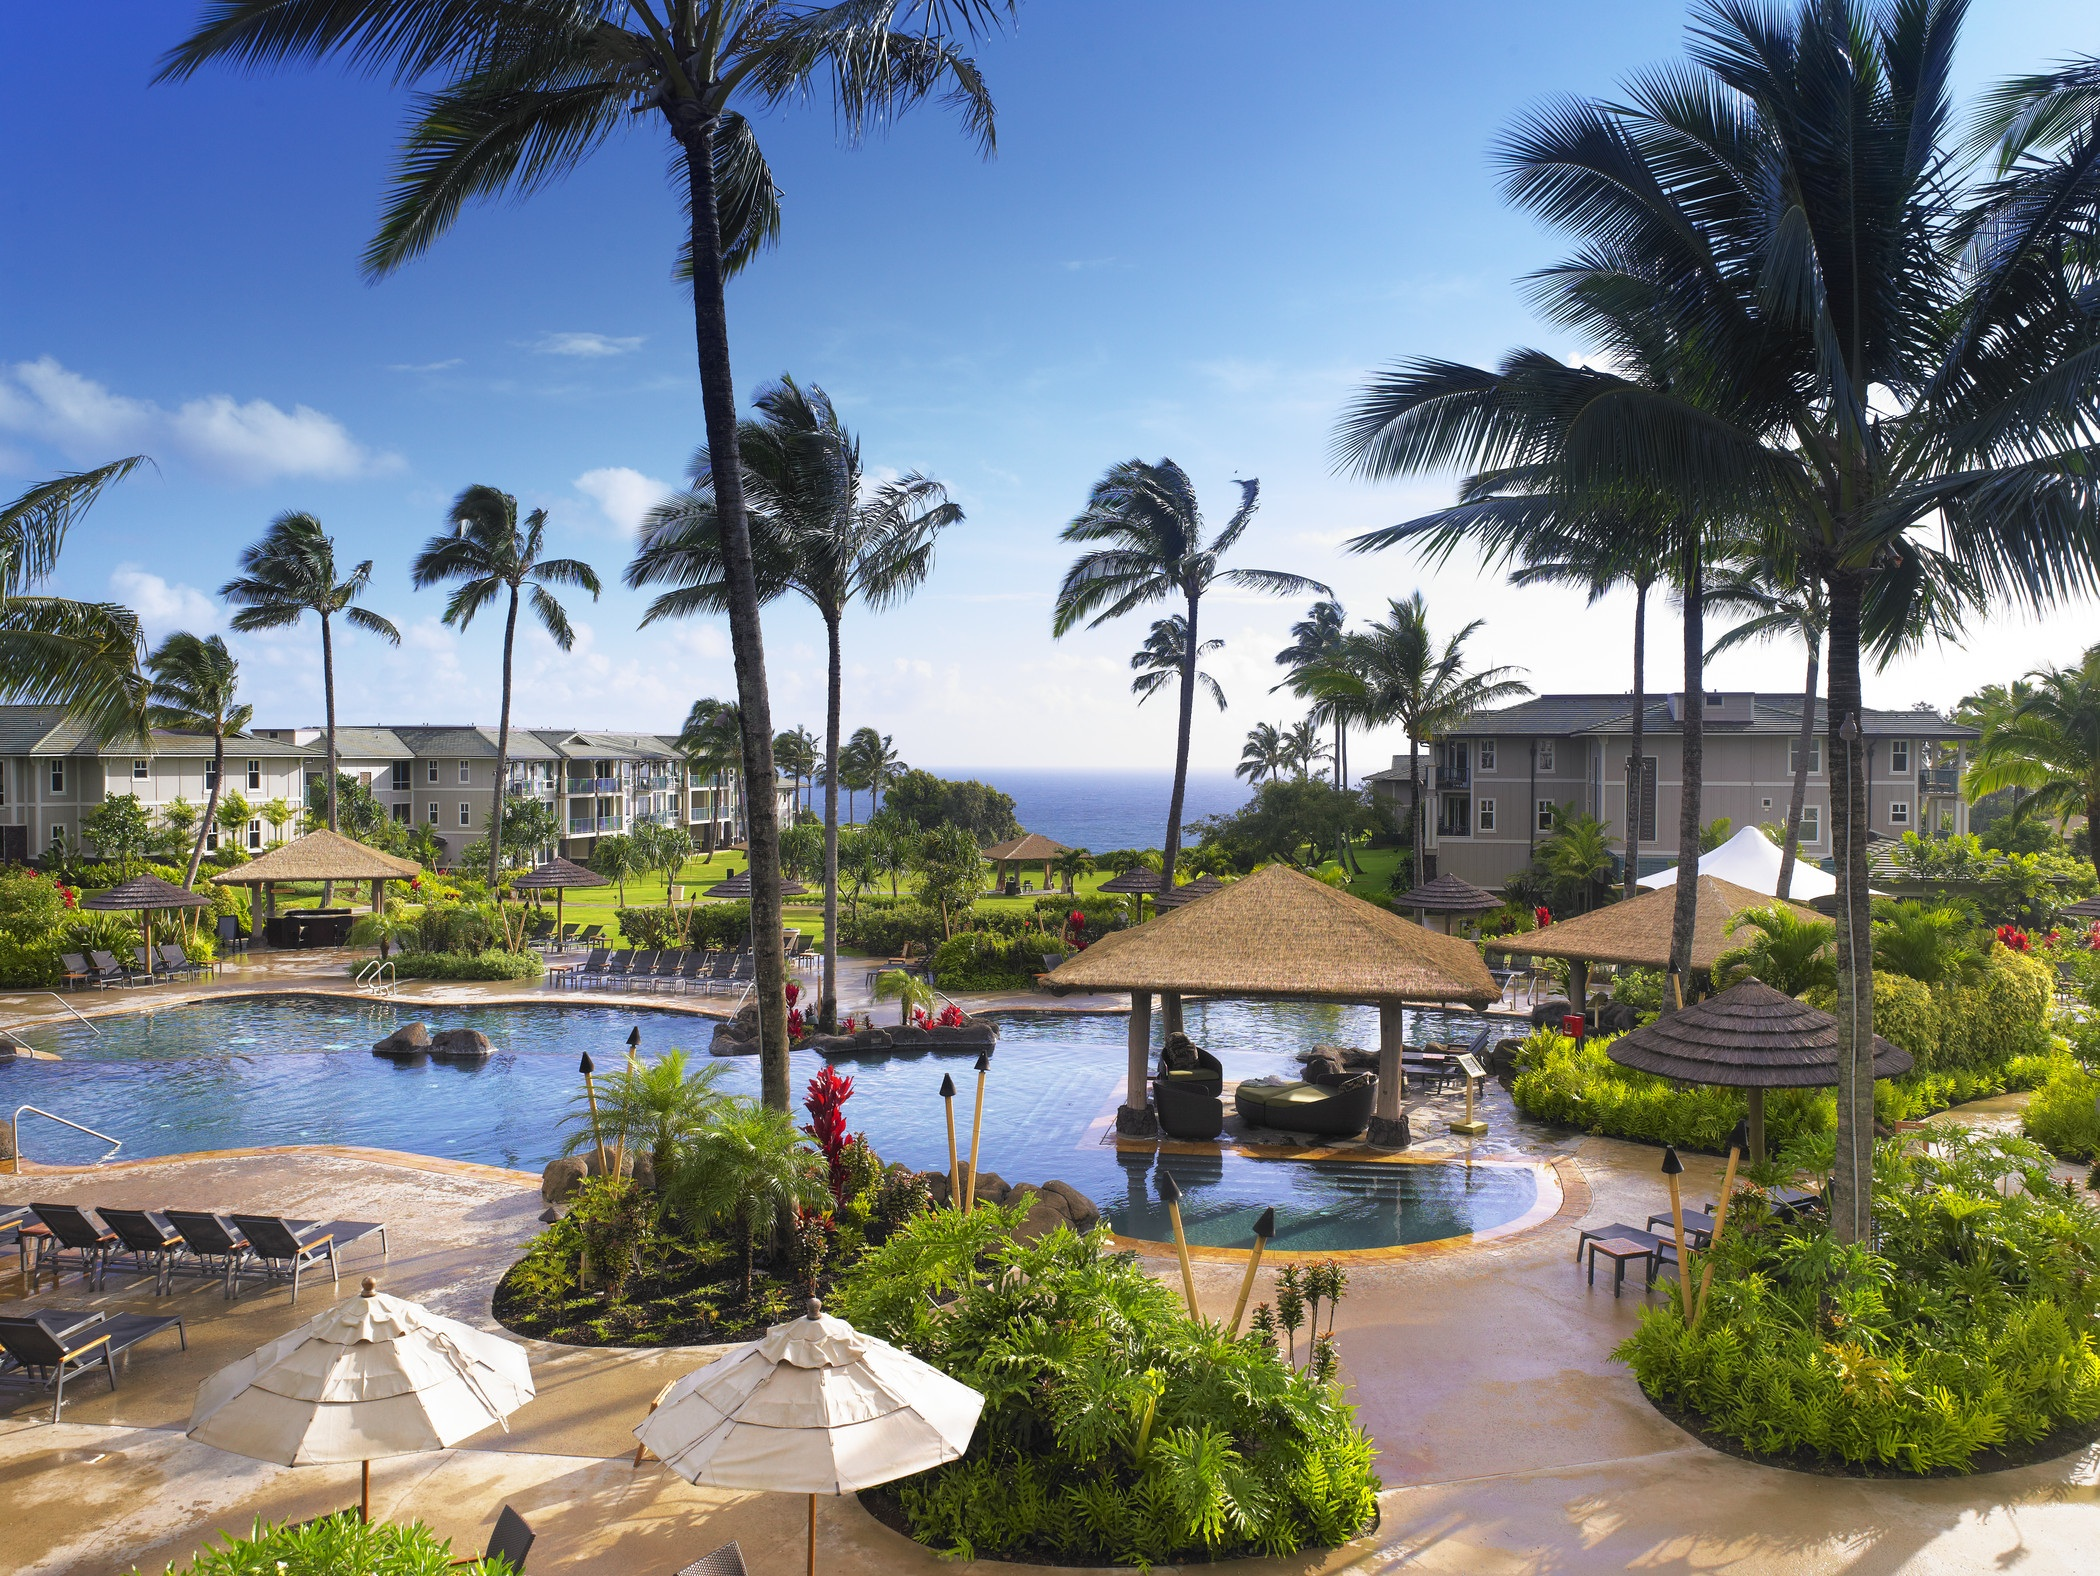 Marriott Maui Ocean Club Villas